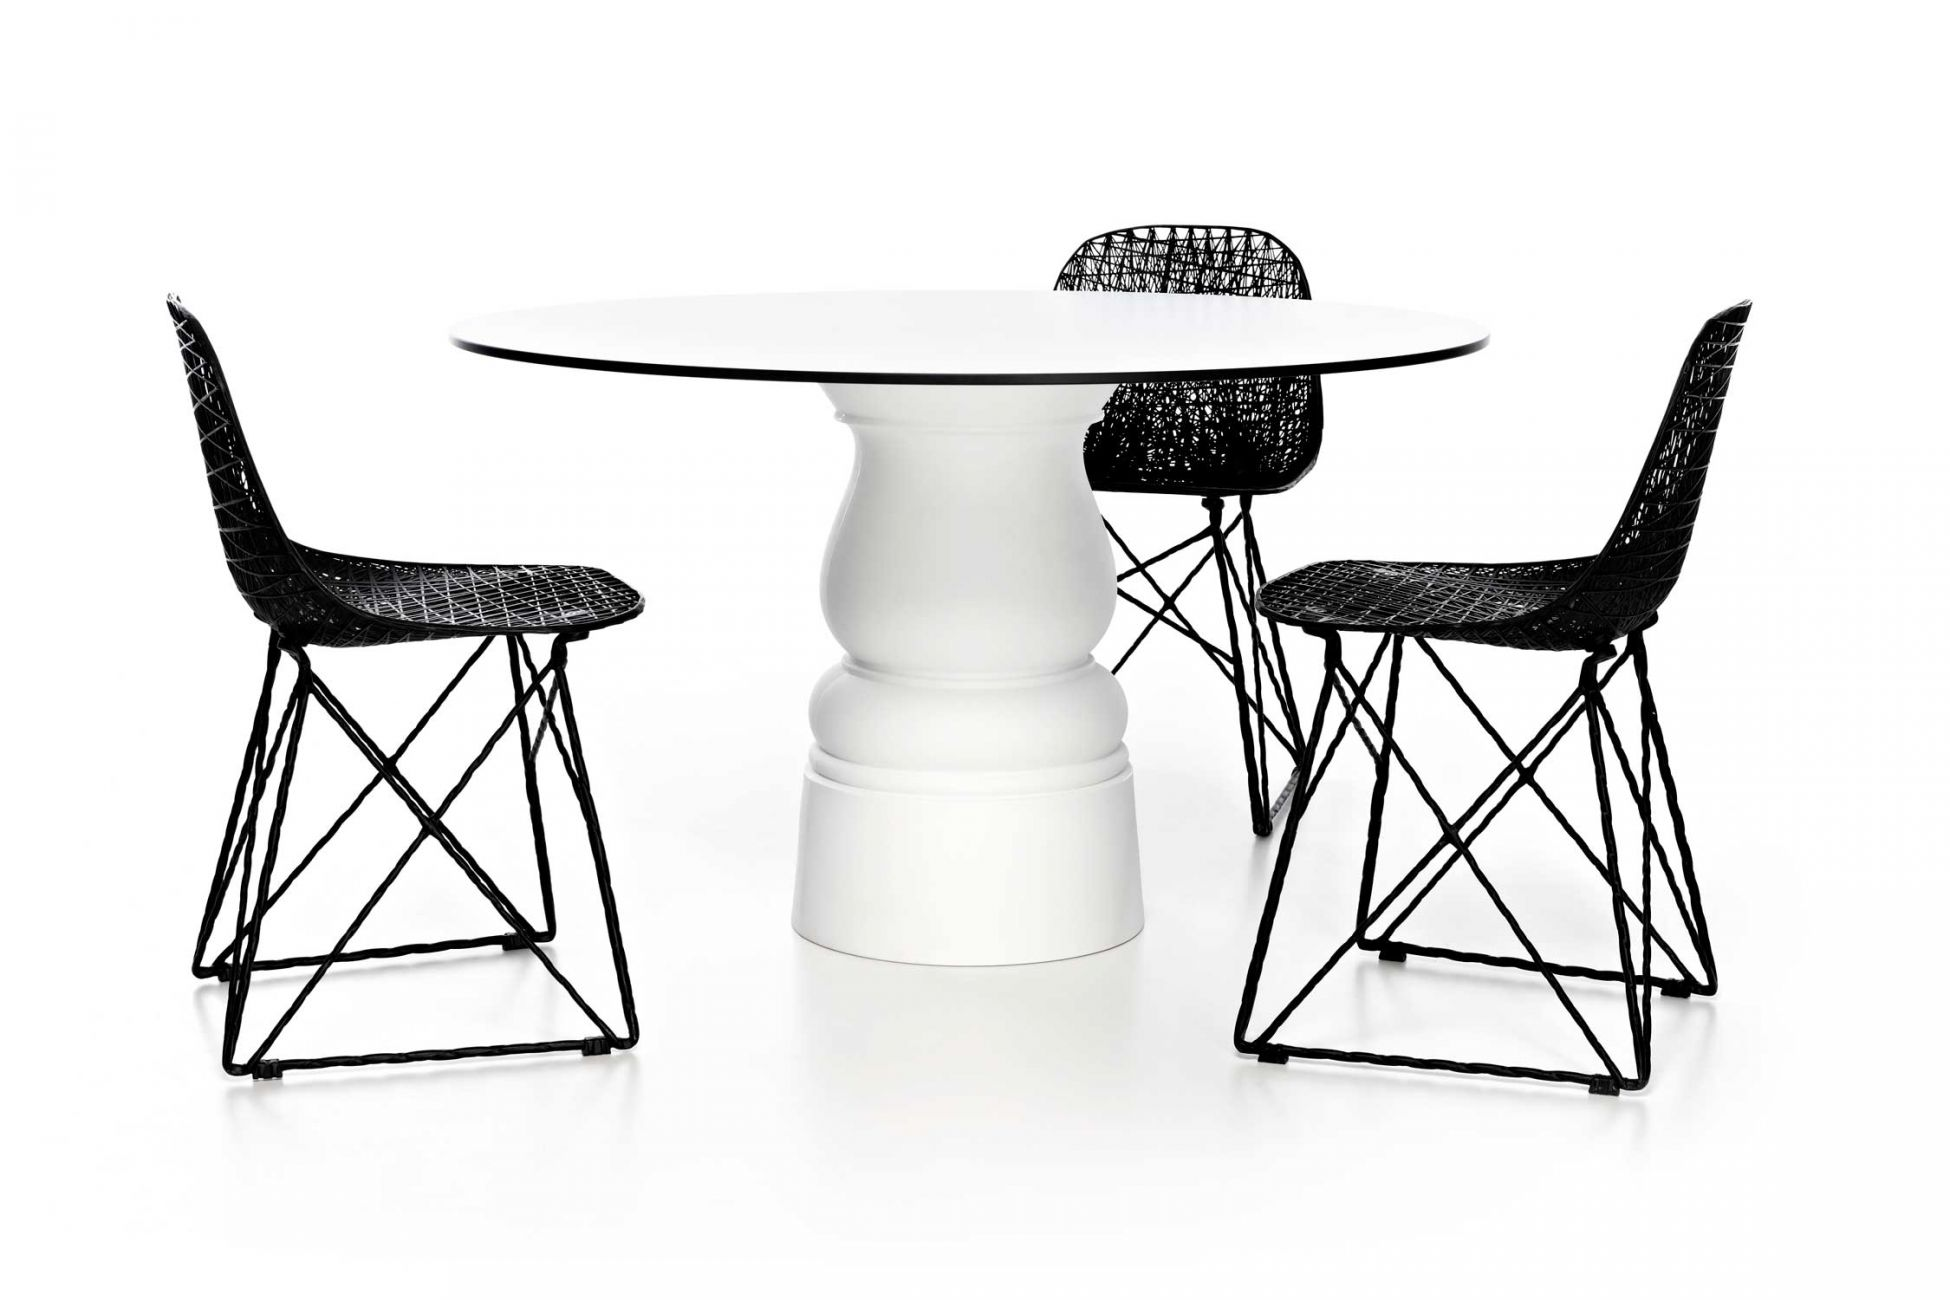 Bertjan Pot's highly successful 'Carbon' chair for Moooi was designed in 2004. Pot remains a regular collaborator.